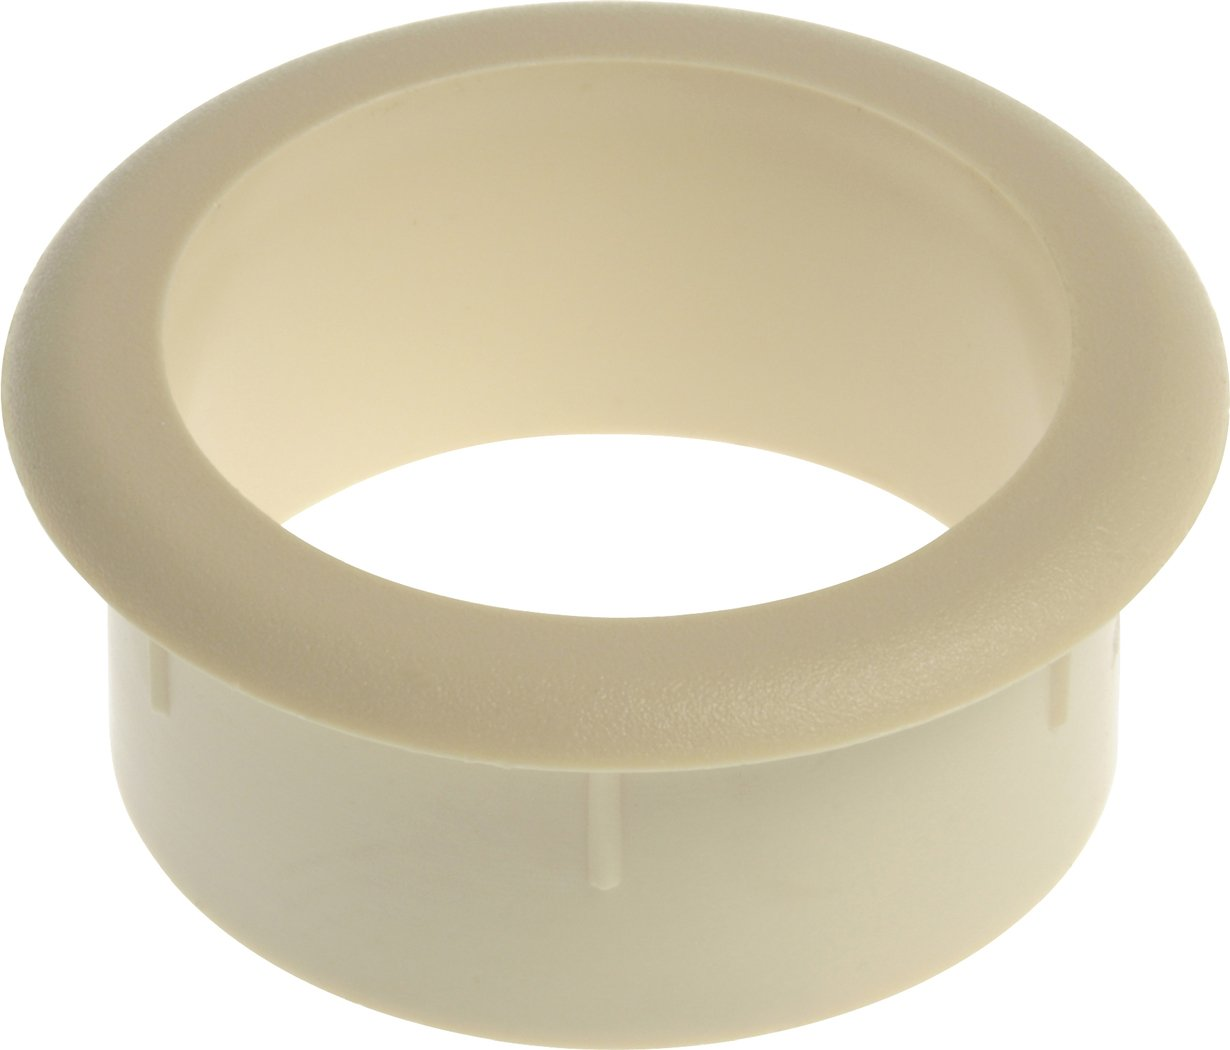 The Hillman Group 59334 1-1/2-Inch Almond Grommet without Cap, 2-Pack